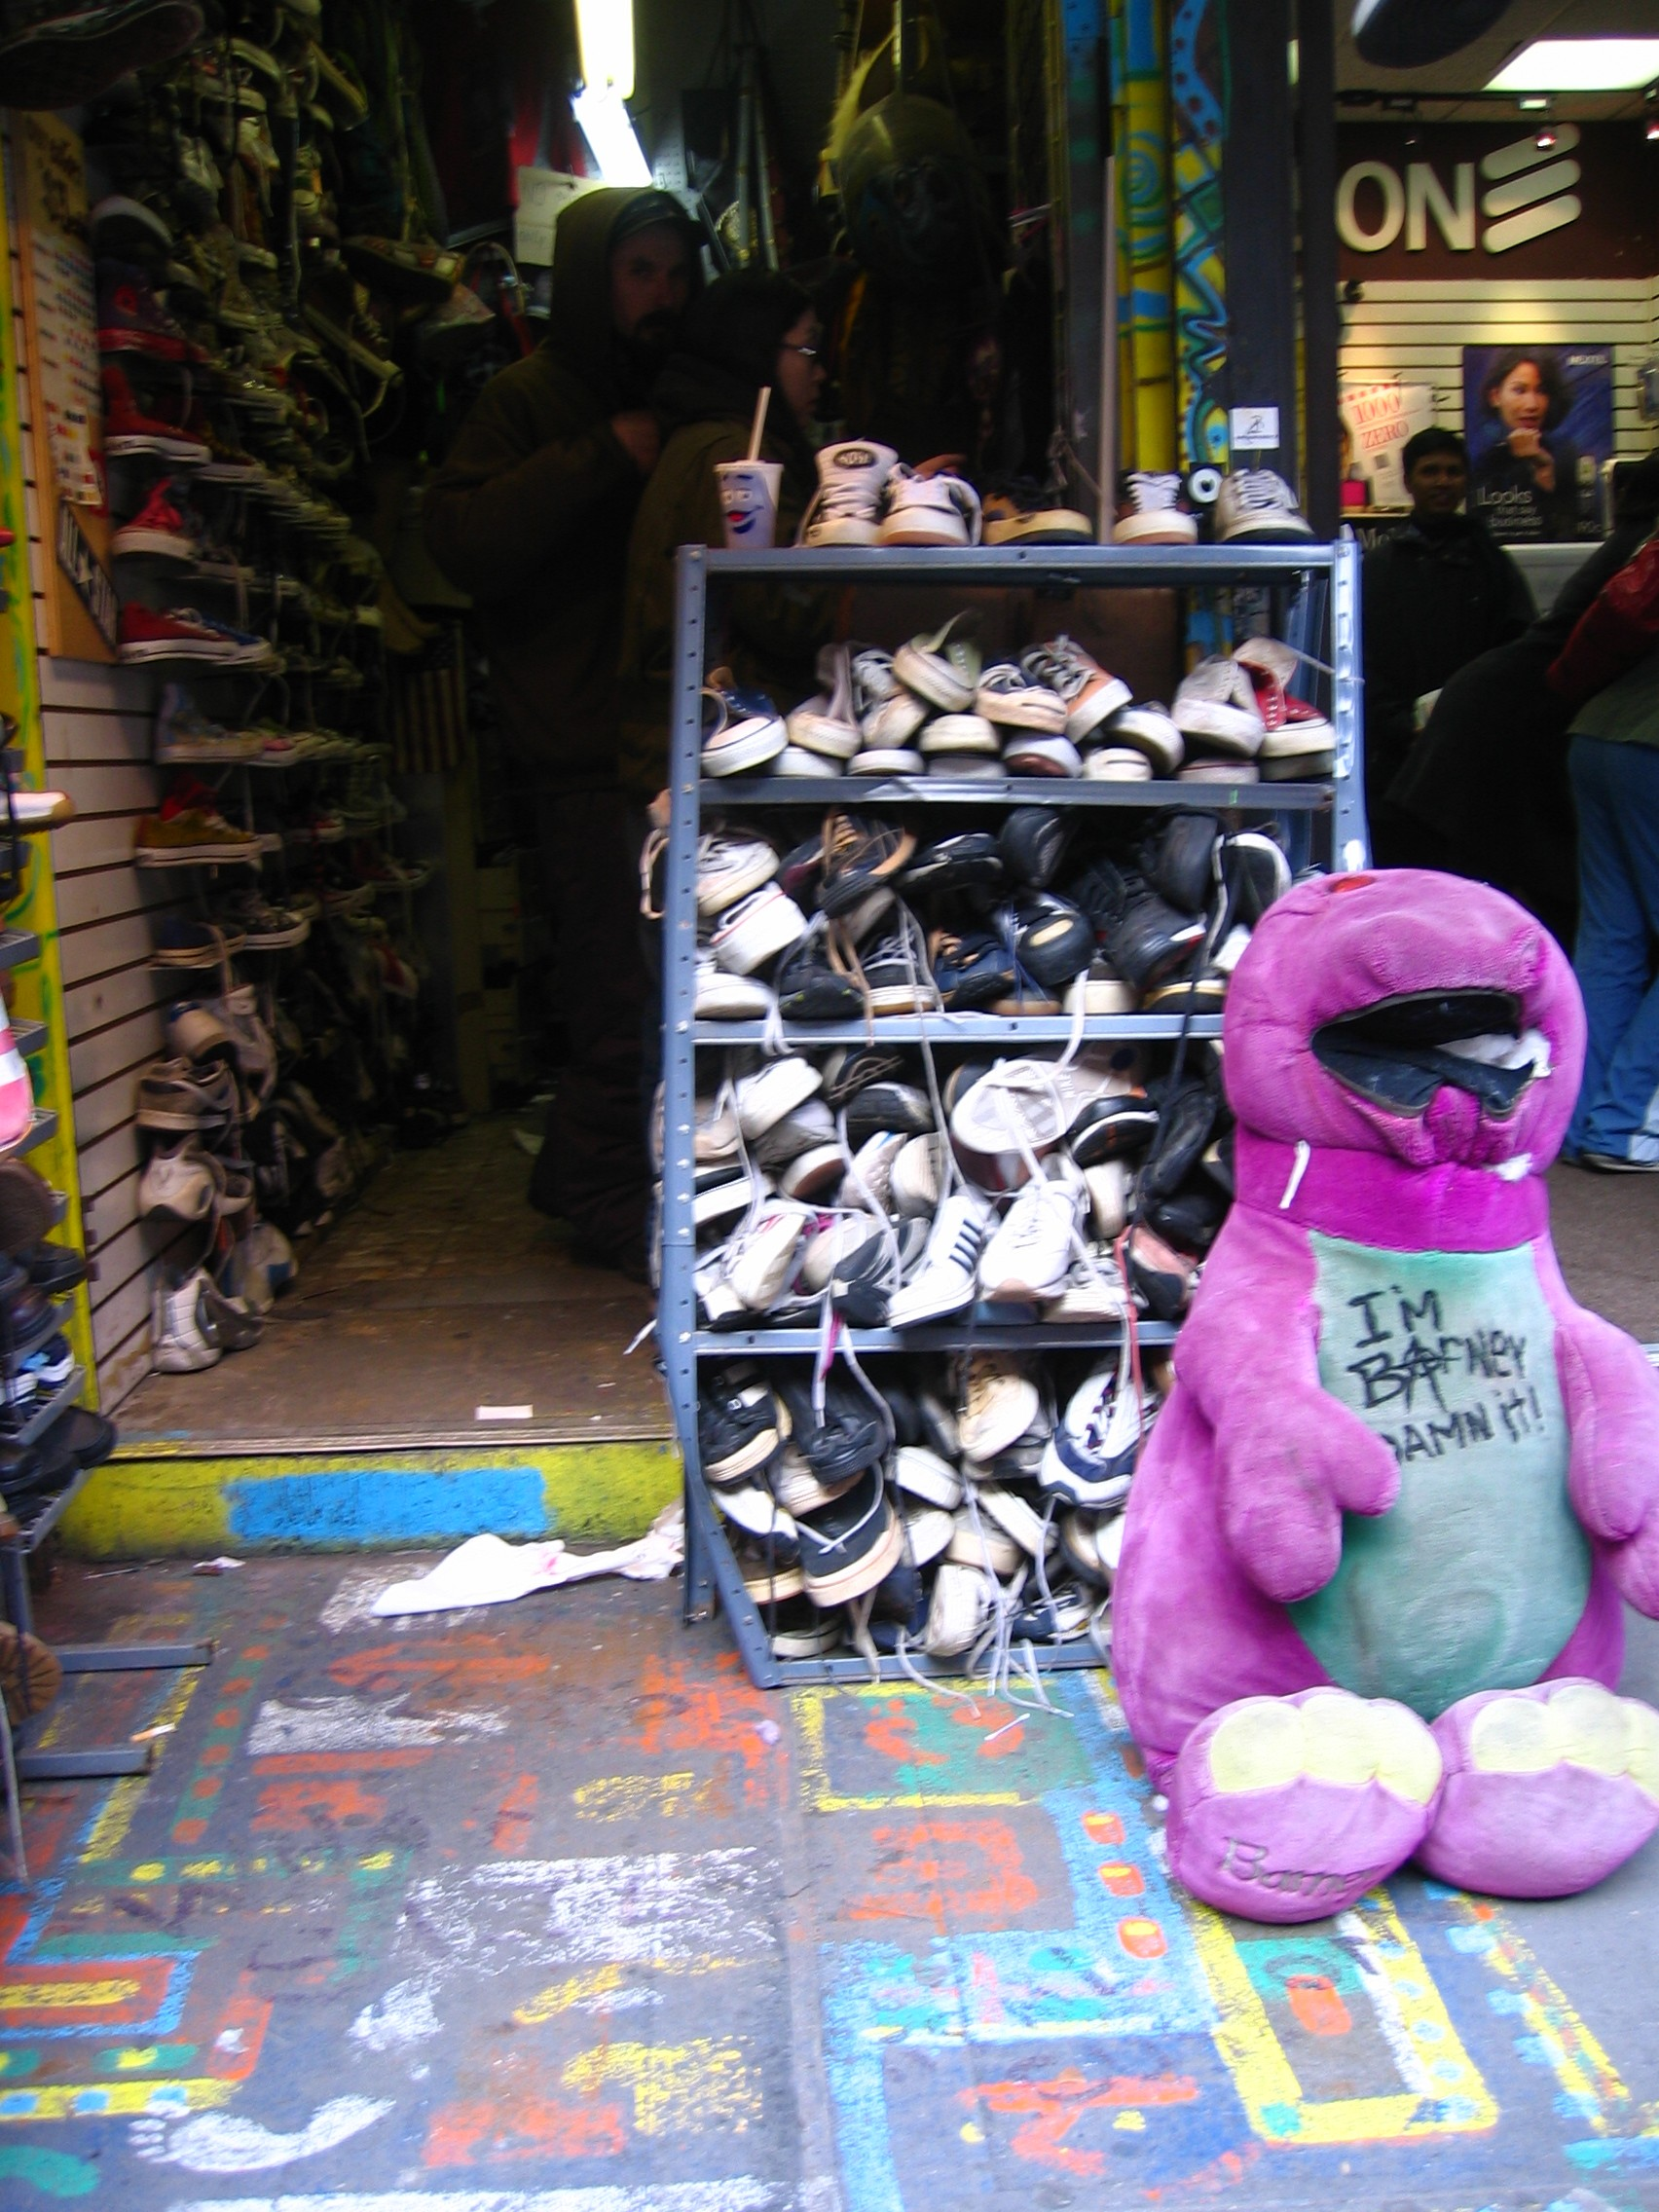 Barney stuffed toy outside of Boris's Shoe Repair